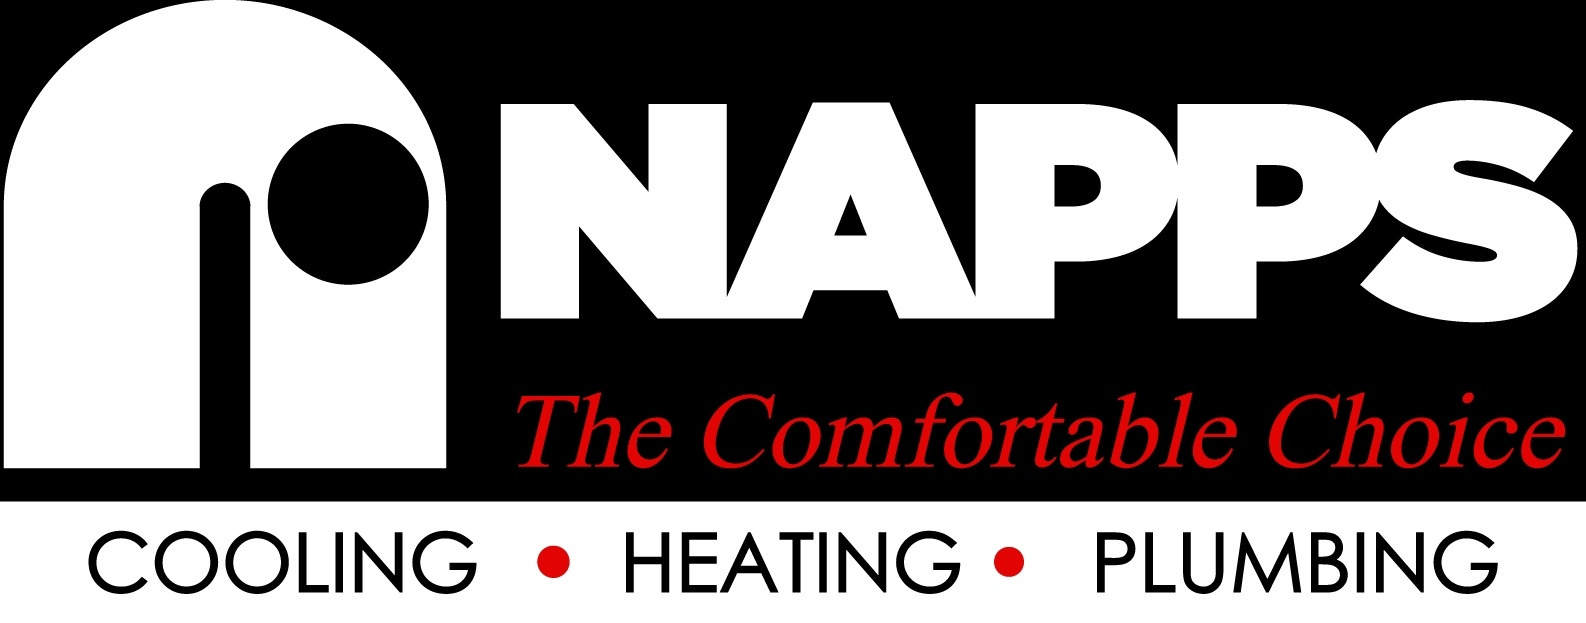 Napps Cooling, Heating & Plumbing (@nappsac) Cover Image